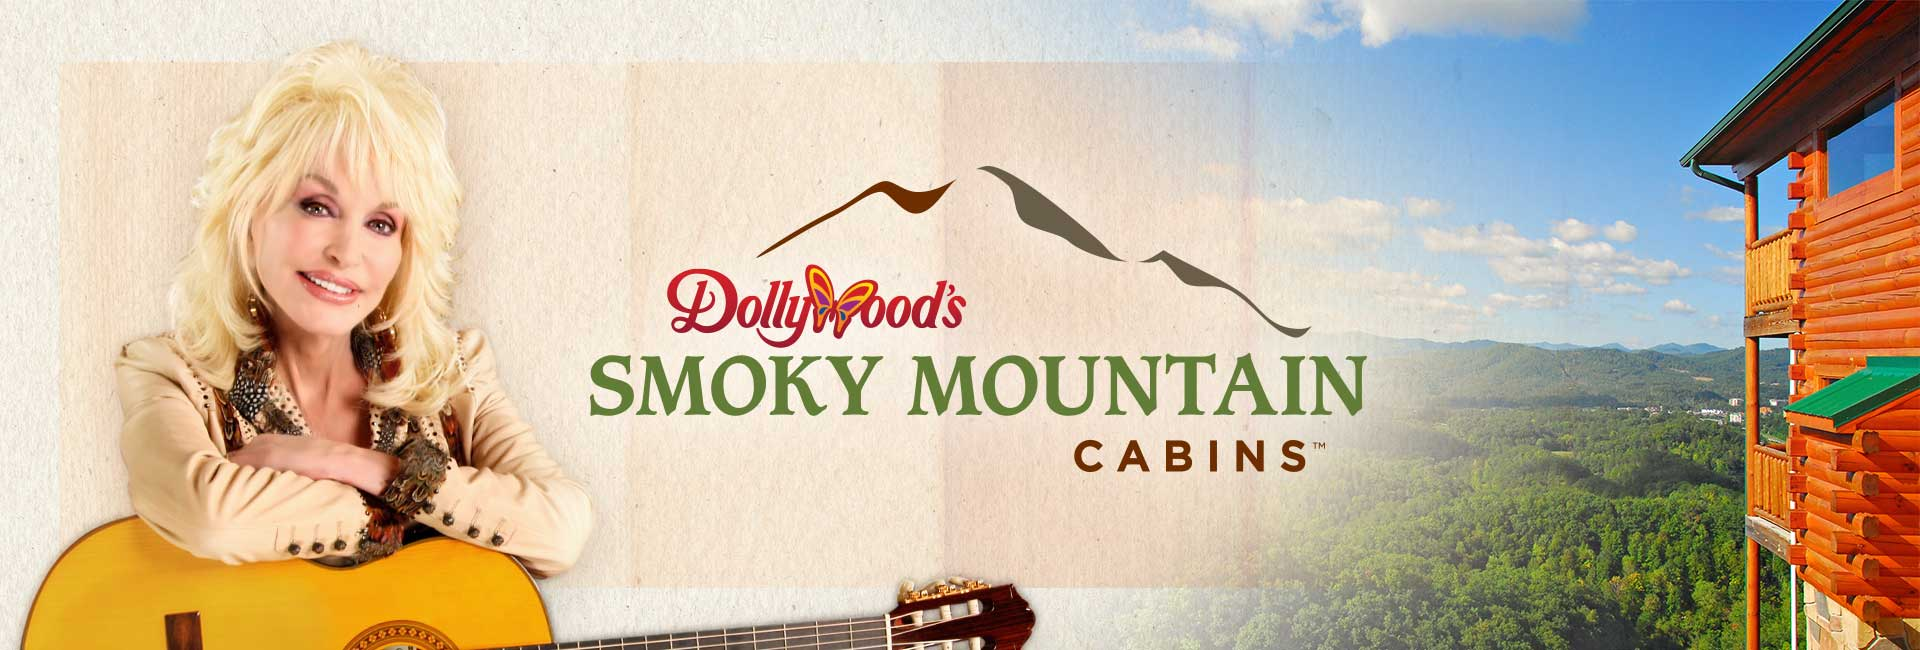 Dollywood's Smoky Mountain Cabins in Pigeon Forge, TN